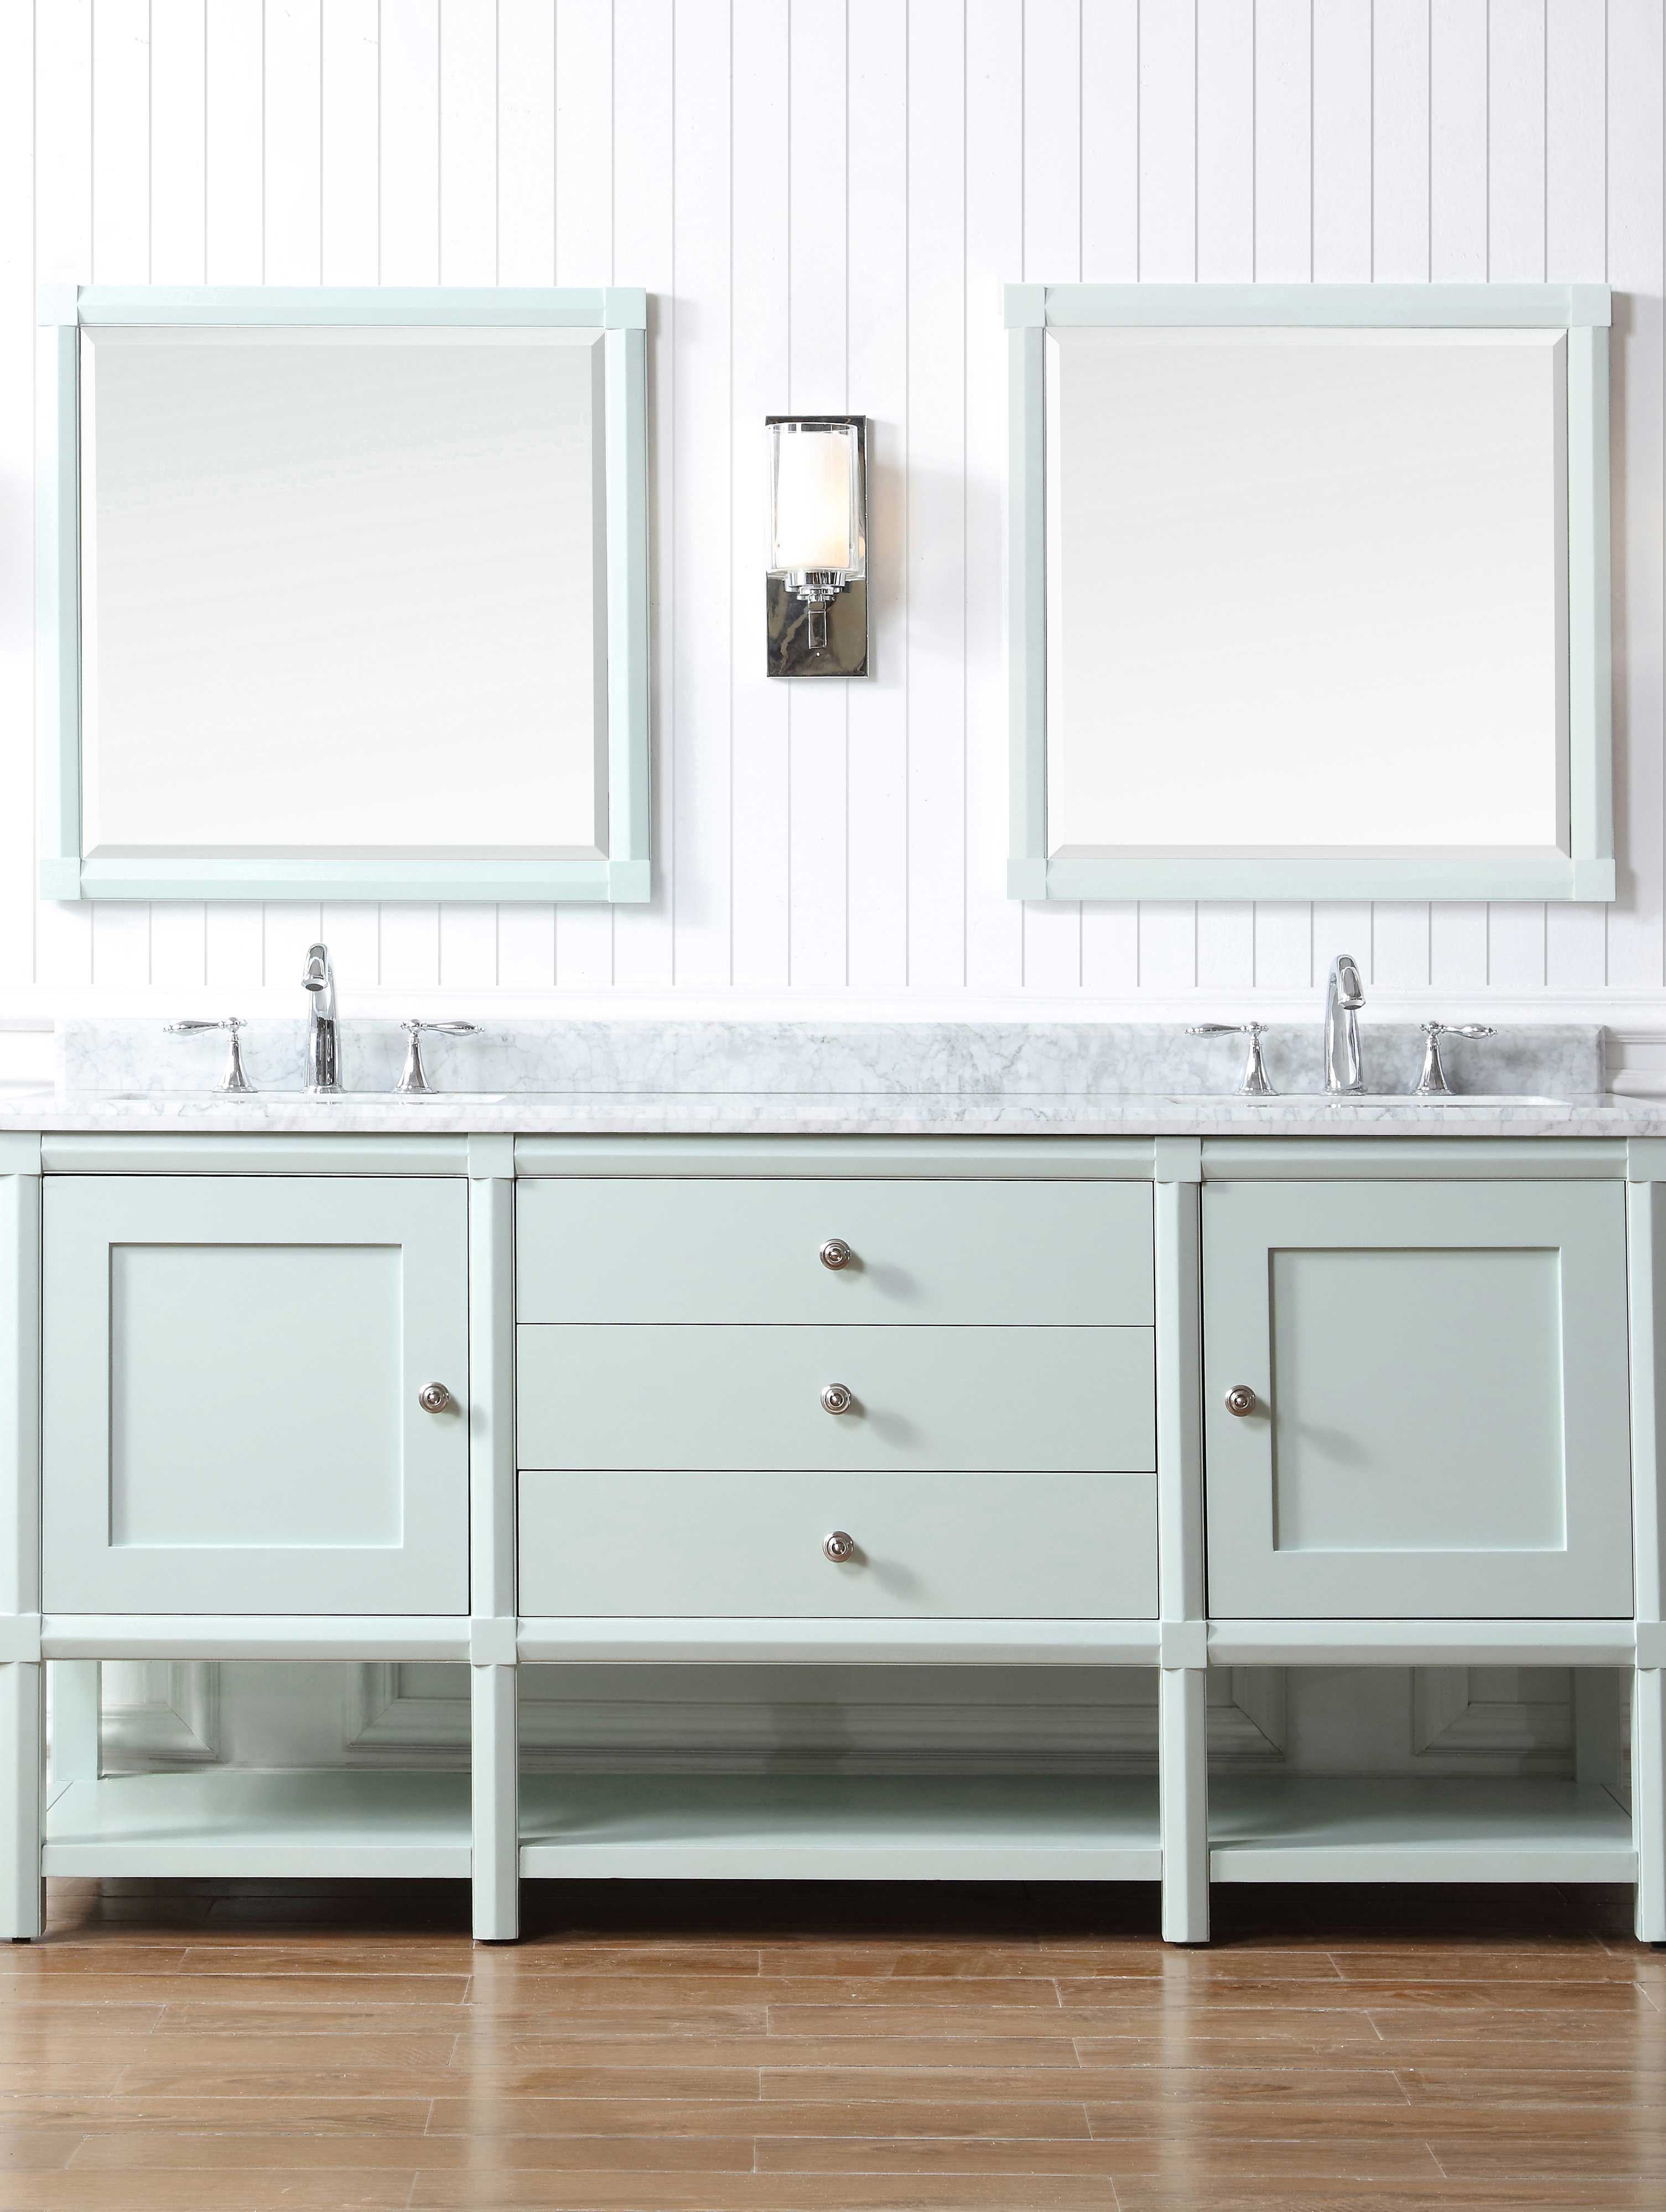 Good Introducing The Martha Stewart Living Sutton Bath Vanity Collection  Available At @homedepot. Pictured Here